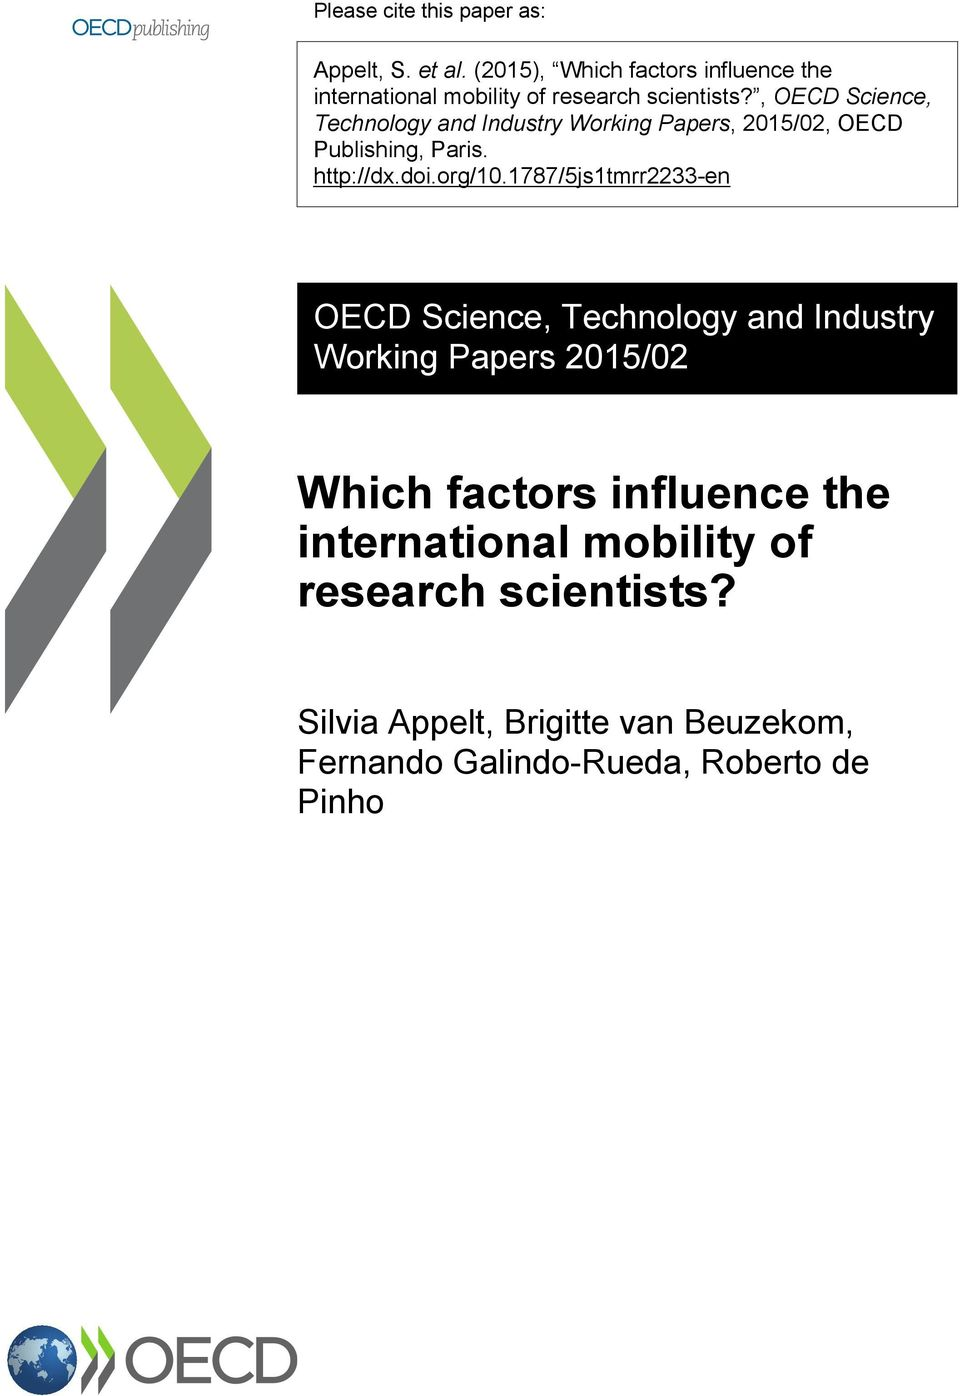 , OECD Science, Technology and Industry Working Papers, 2015/02, OECD Publishing, Paris. http://dx.doi.org/10.